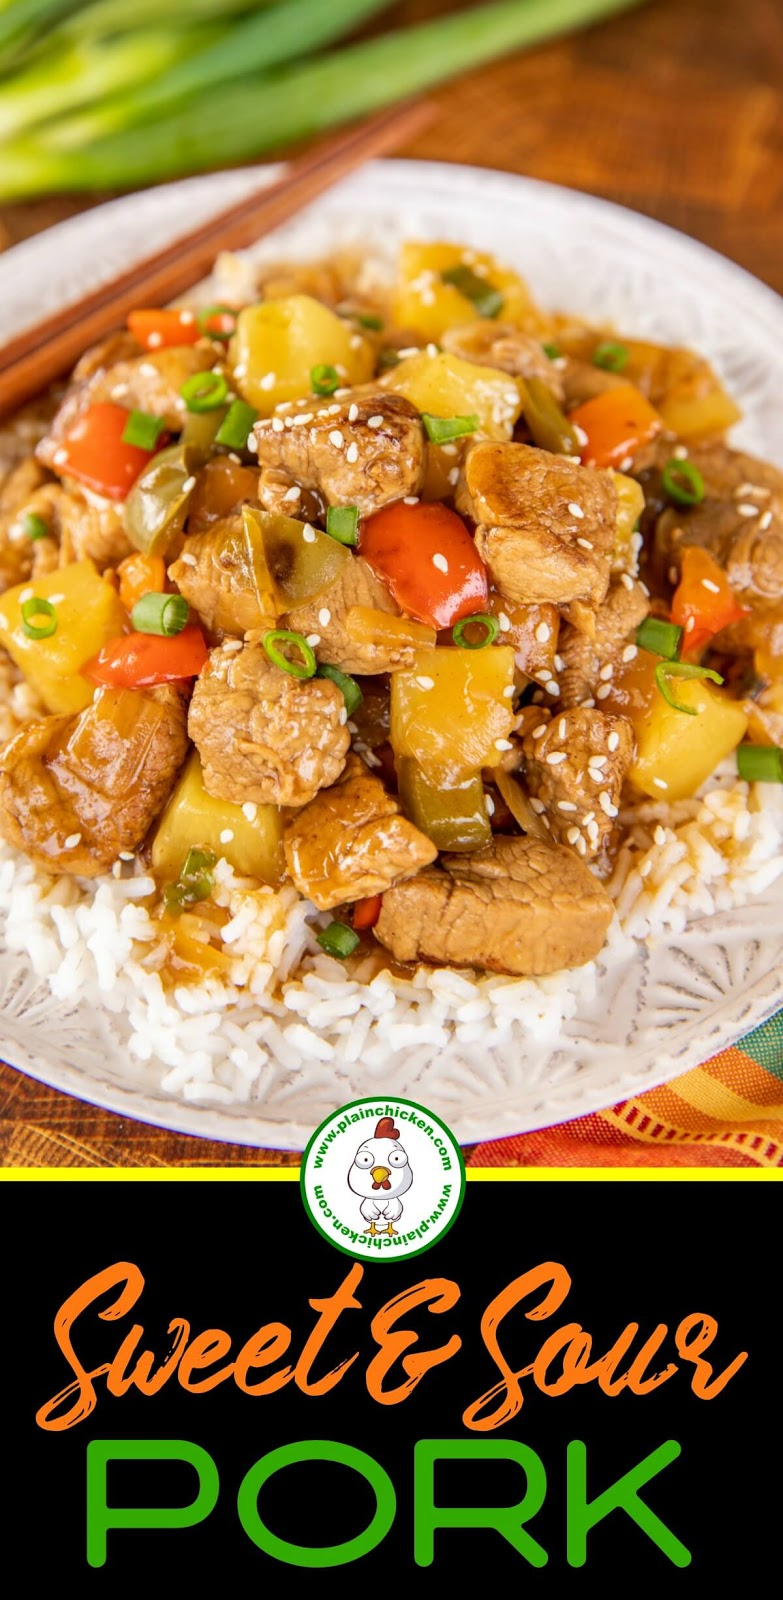 Sweet & Sour Pork on a plate with rice